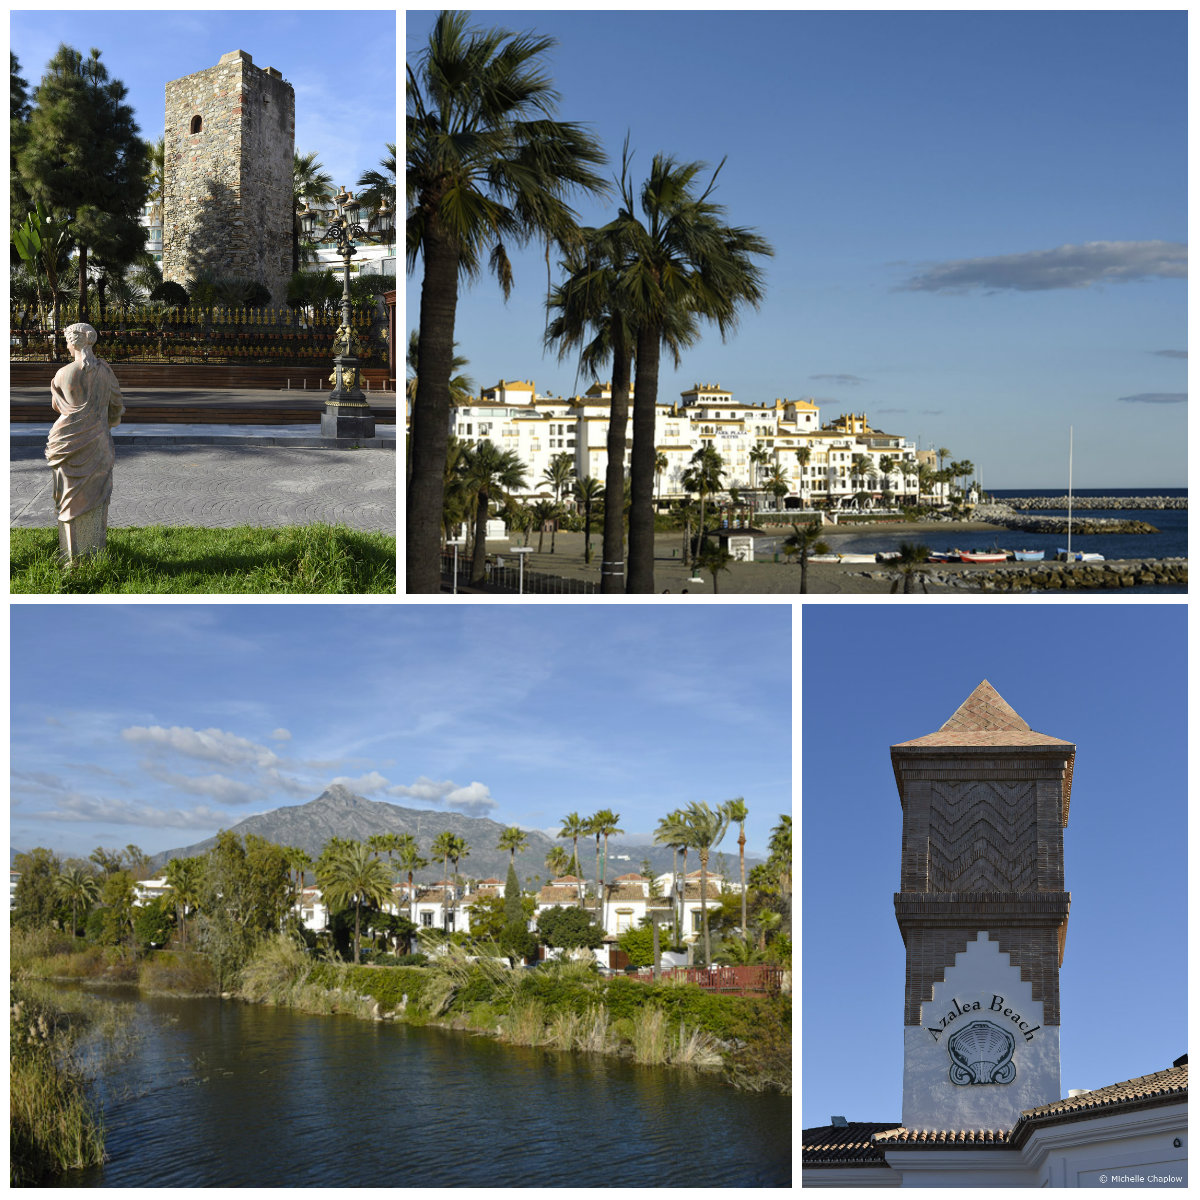 Amazing views in Puerto Banus (click to enlarge image).